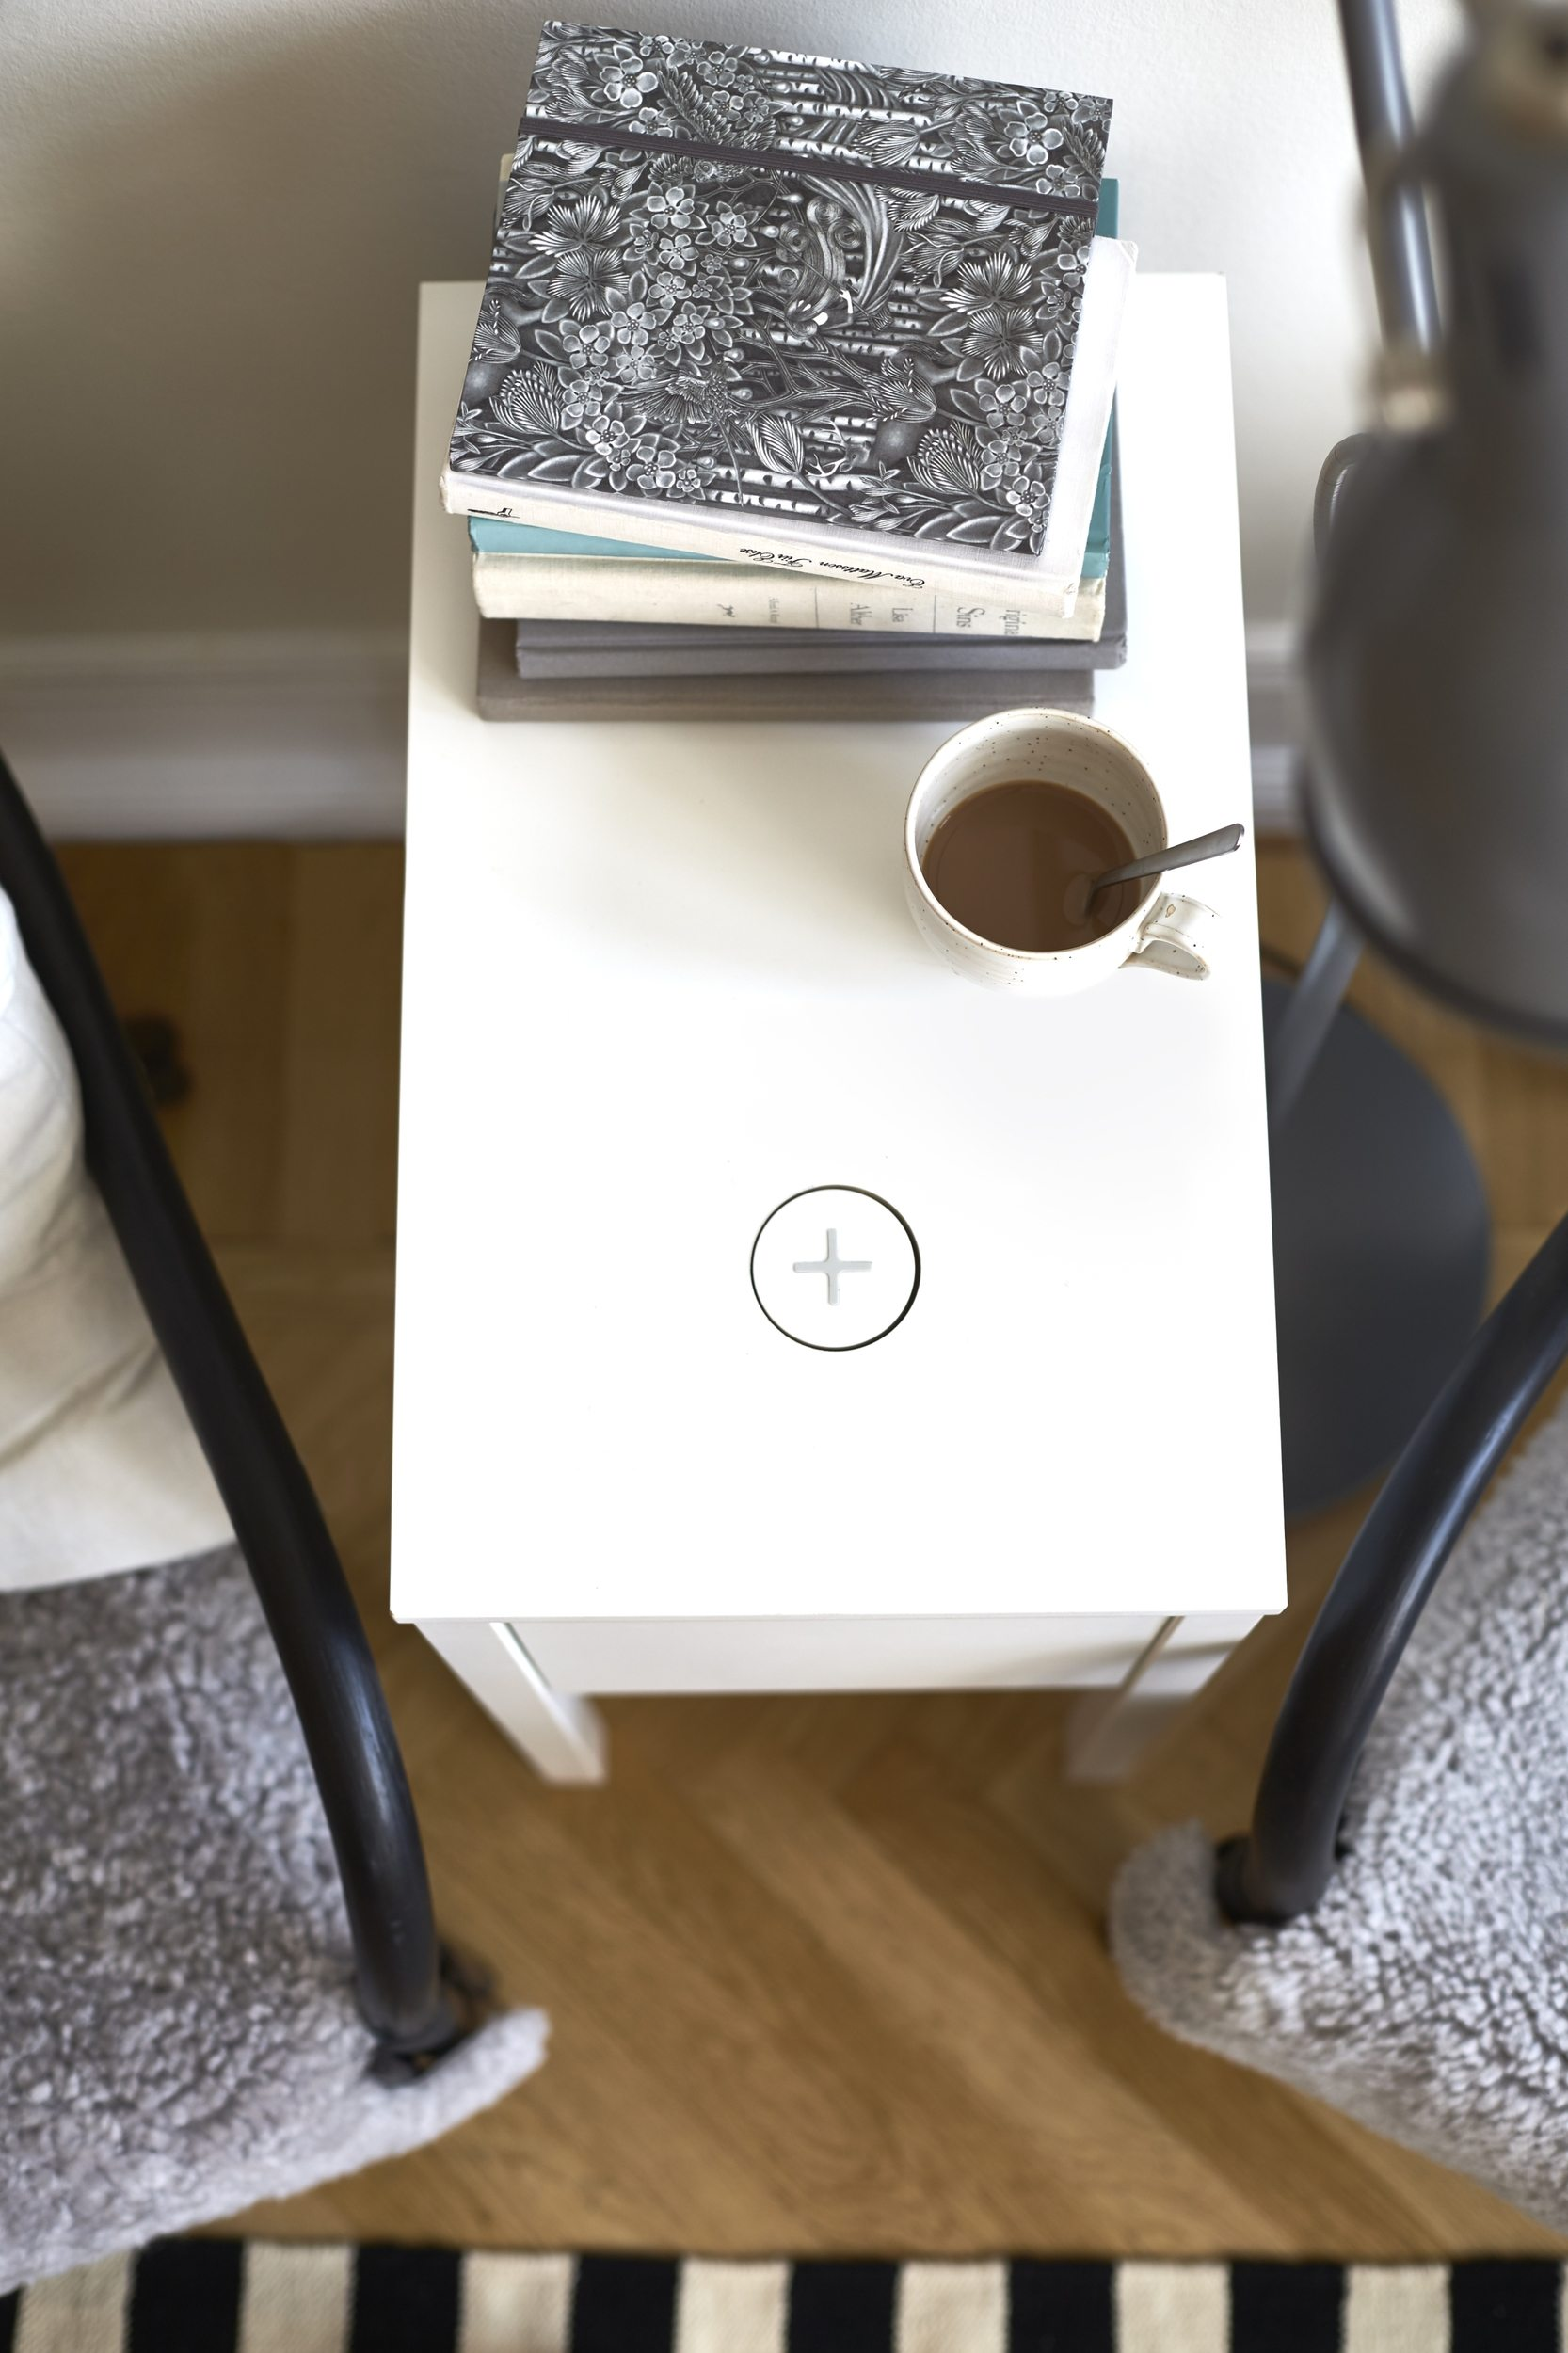 House Hacking Ikea Uses Qi Wireless Charging In New